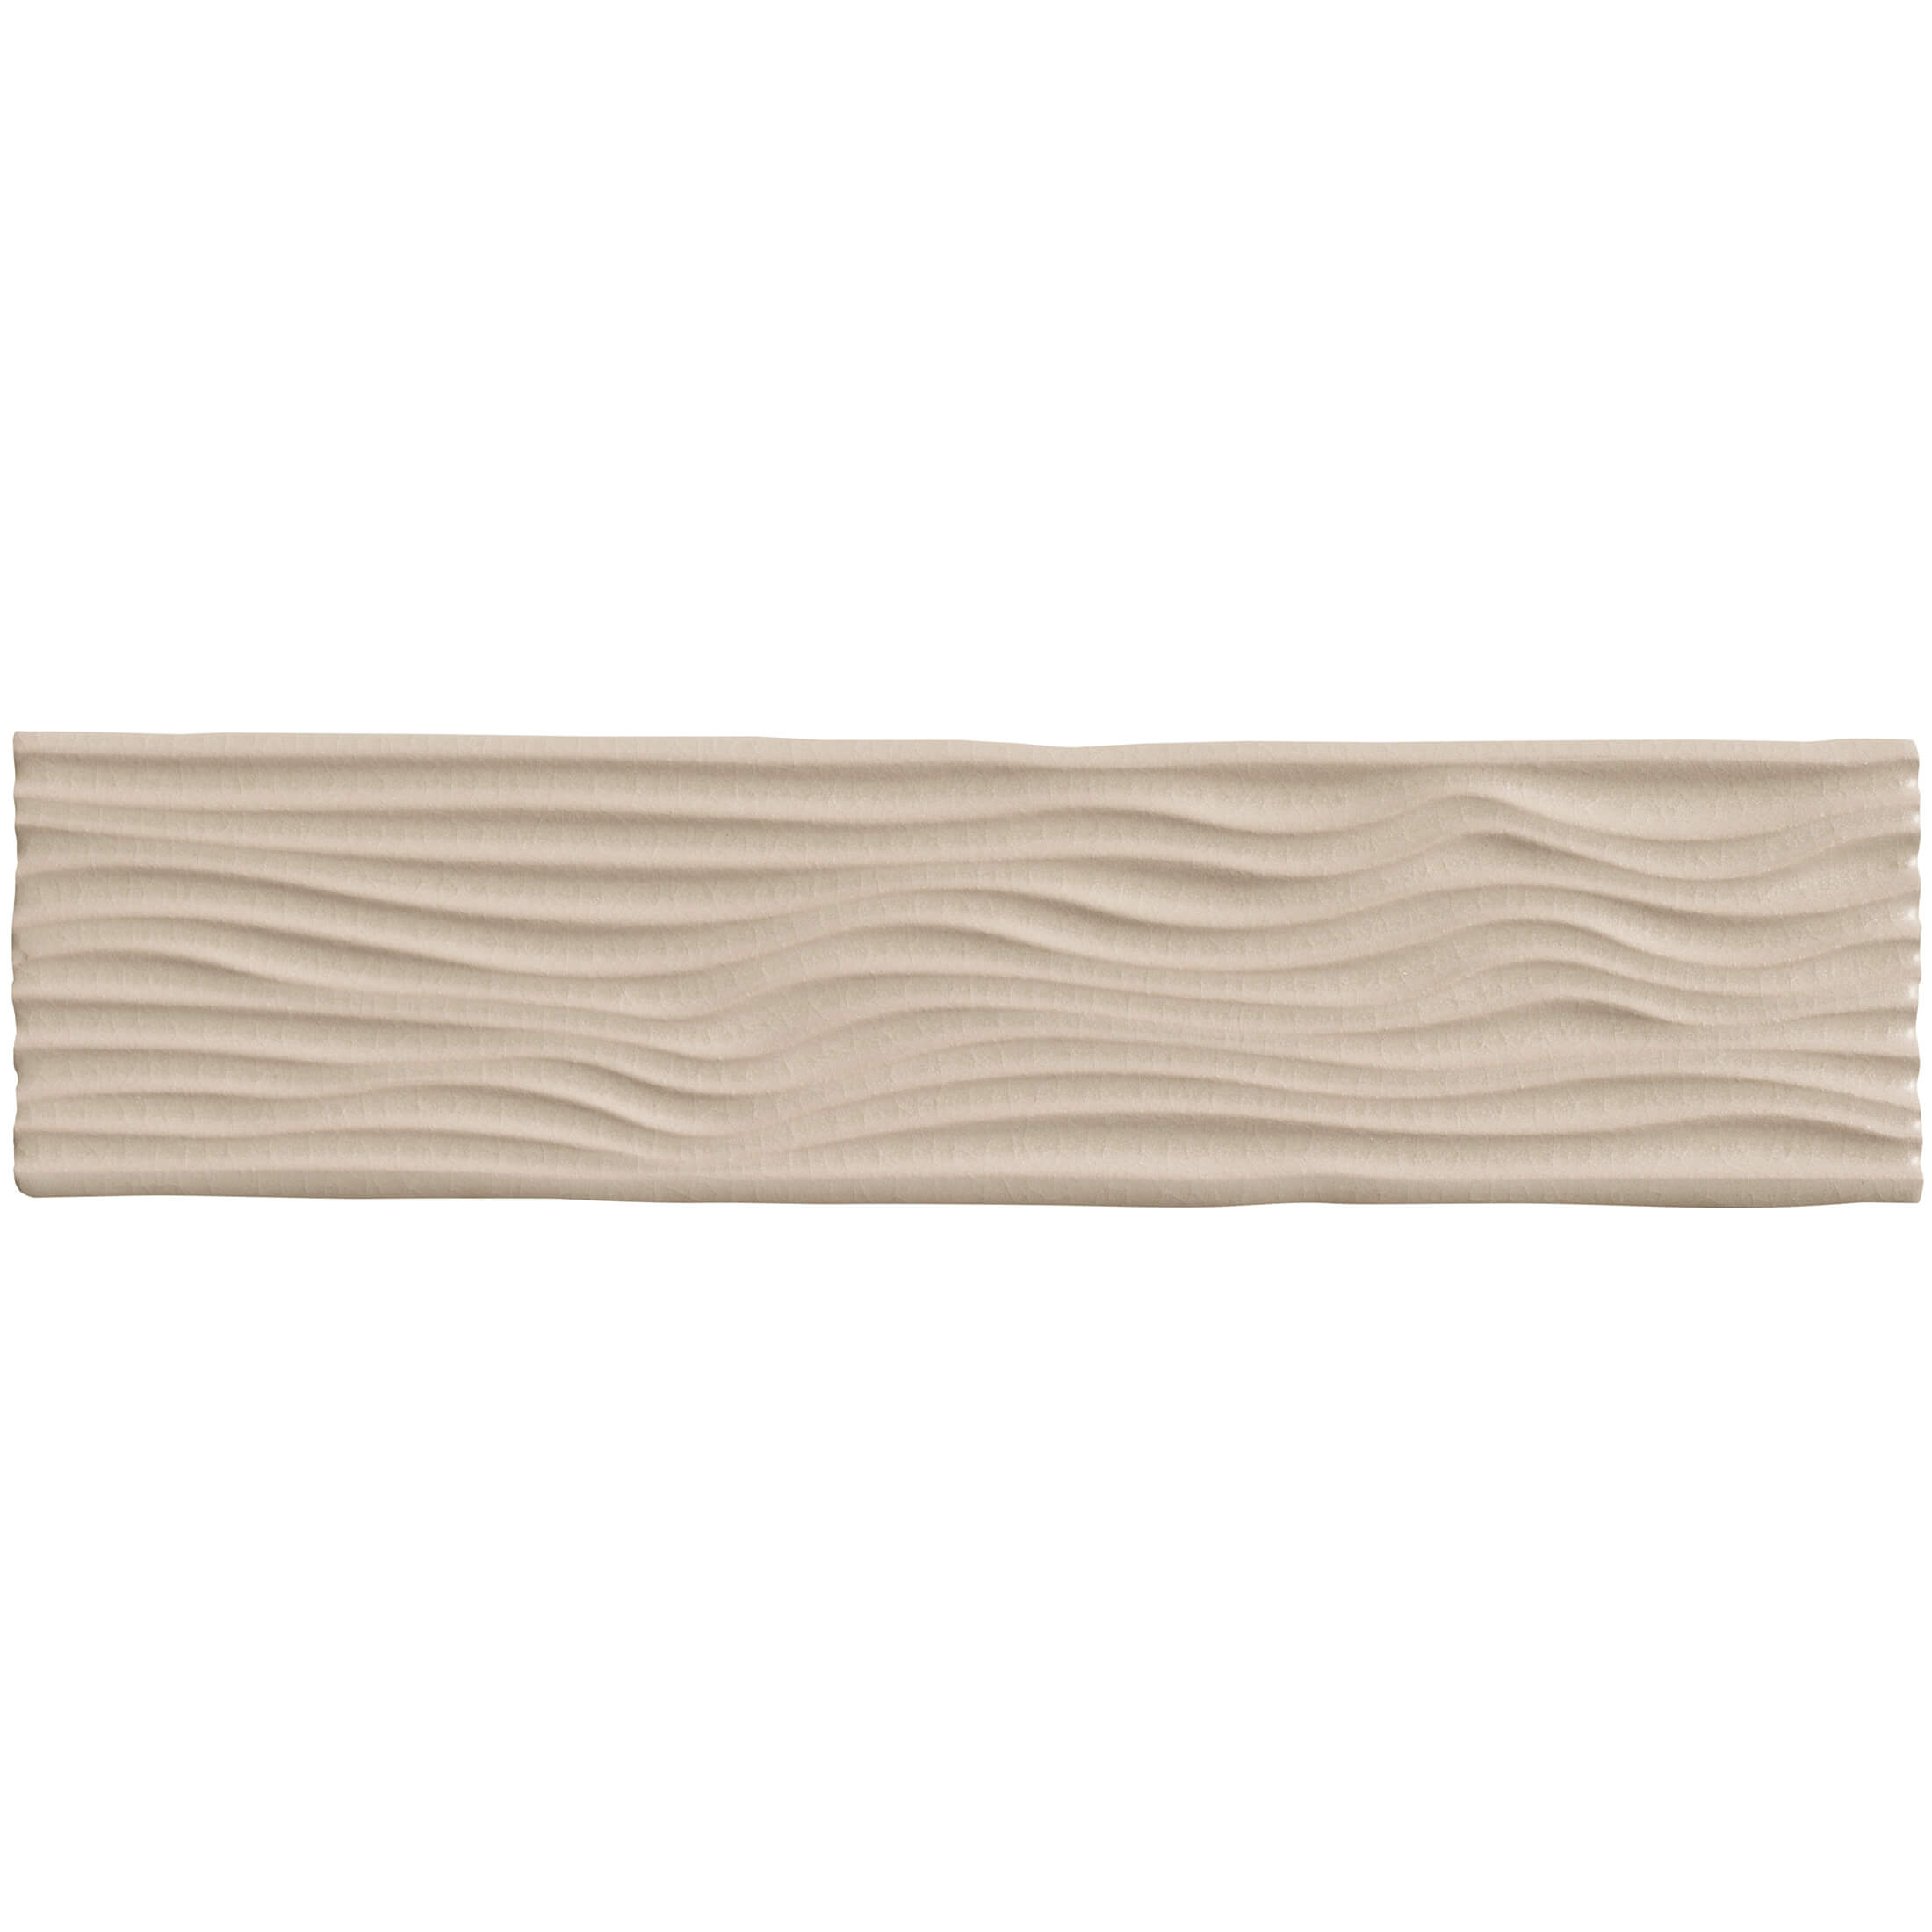 ADEH1012 - LISO WAVES - 7.5 cm X 30 cm